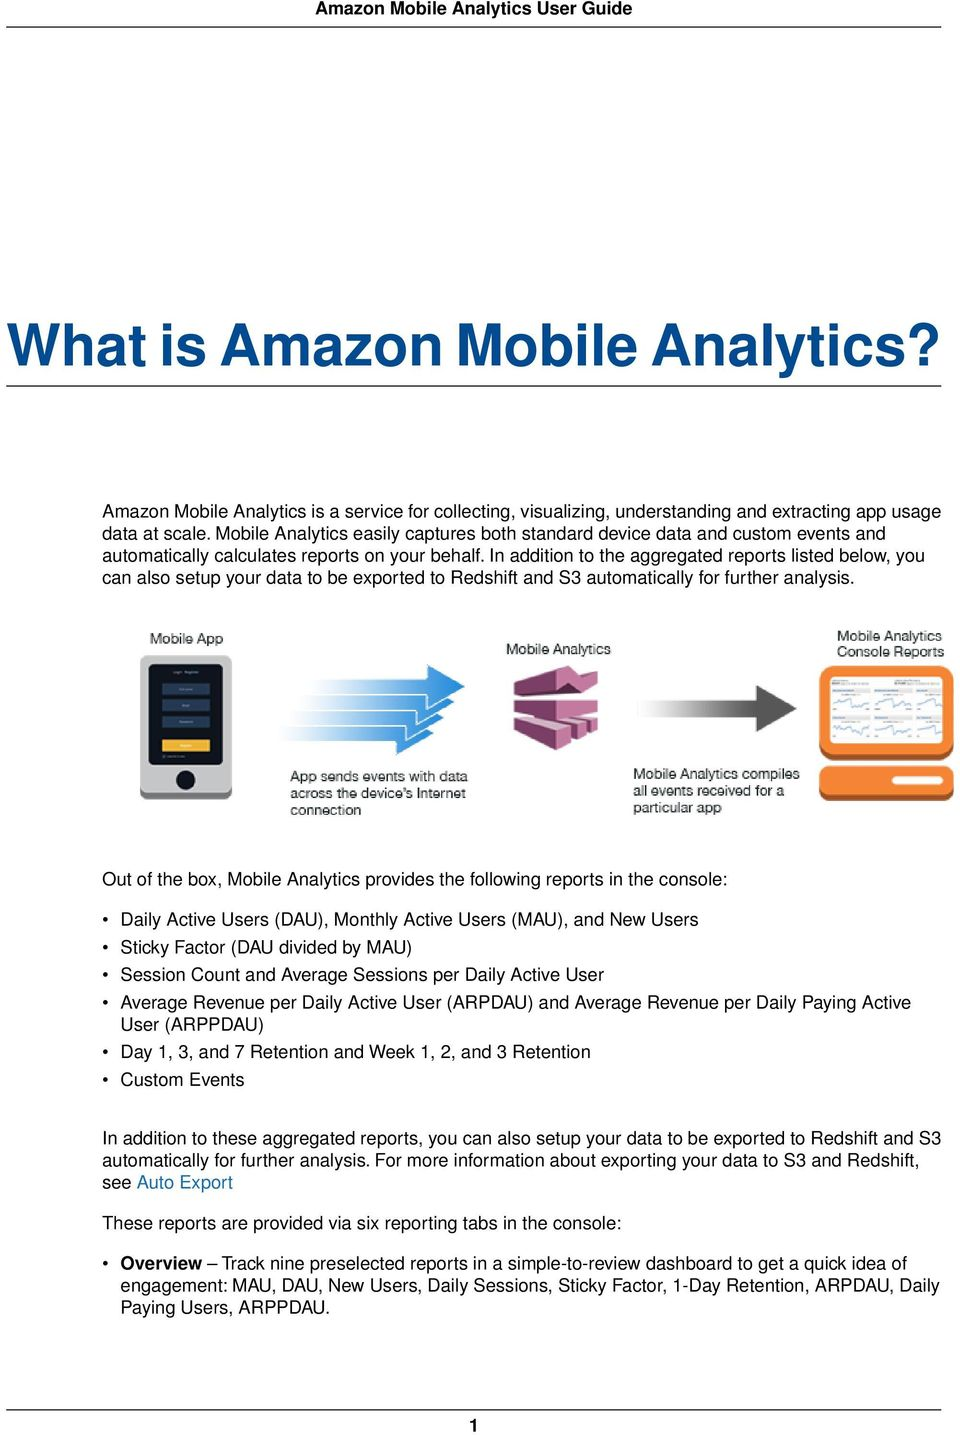 Amazon Mobile Analytics  User Guide - PDF